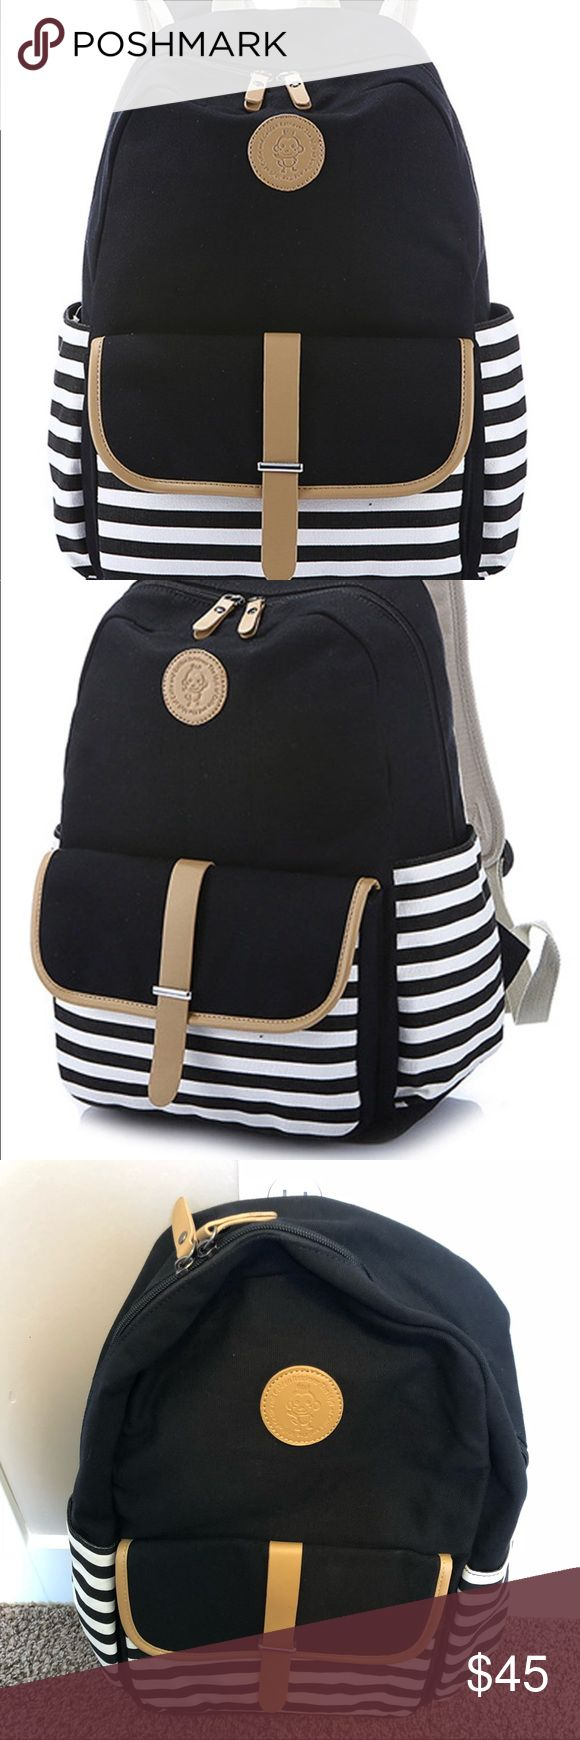 🆕 Ofeily - Black and White Stripe Canvas Backpack Black and White Striped Canvas Backpack - Ofeily Brand - Perfect for a backpack, diaper bag, weekend bag, purse, hiking, or every day wear!  Details: One main pack with laptop compartment, two sides pockets, one front pocket. Can fit 14 inch Laptop. Attribute: Durable, adjustable shoulder straps. Size: 13.8*17.7*6.7 in (L*H*W). With lots of pockets within the main compartment, which can carry all of your necessities around you.ike new…